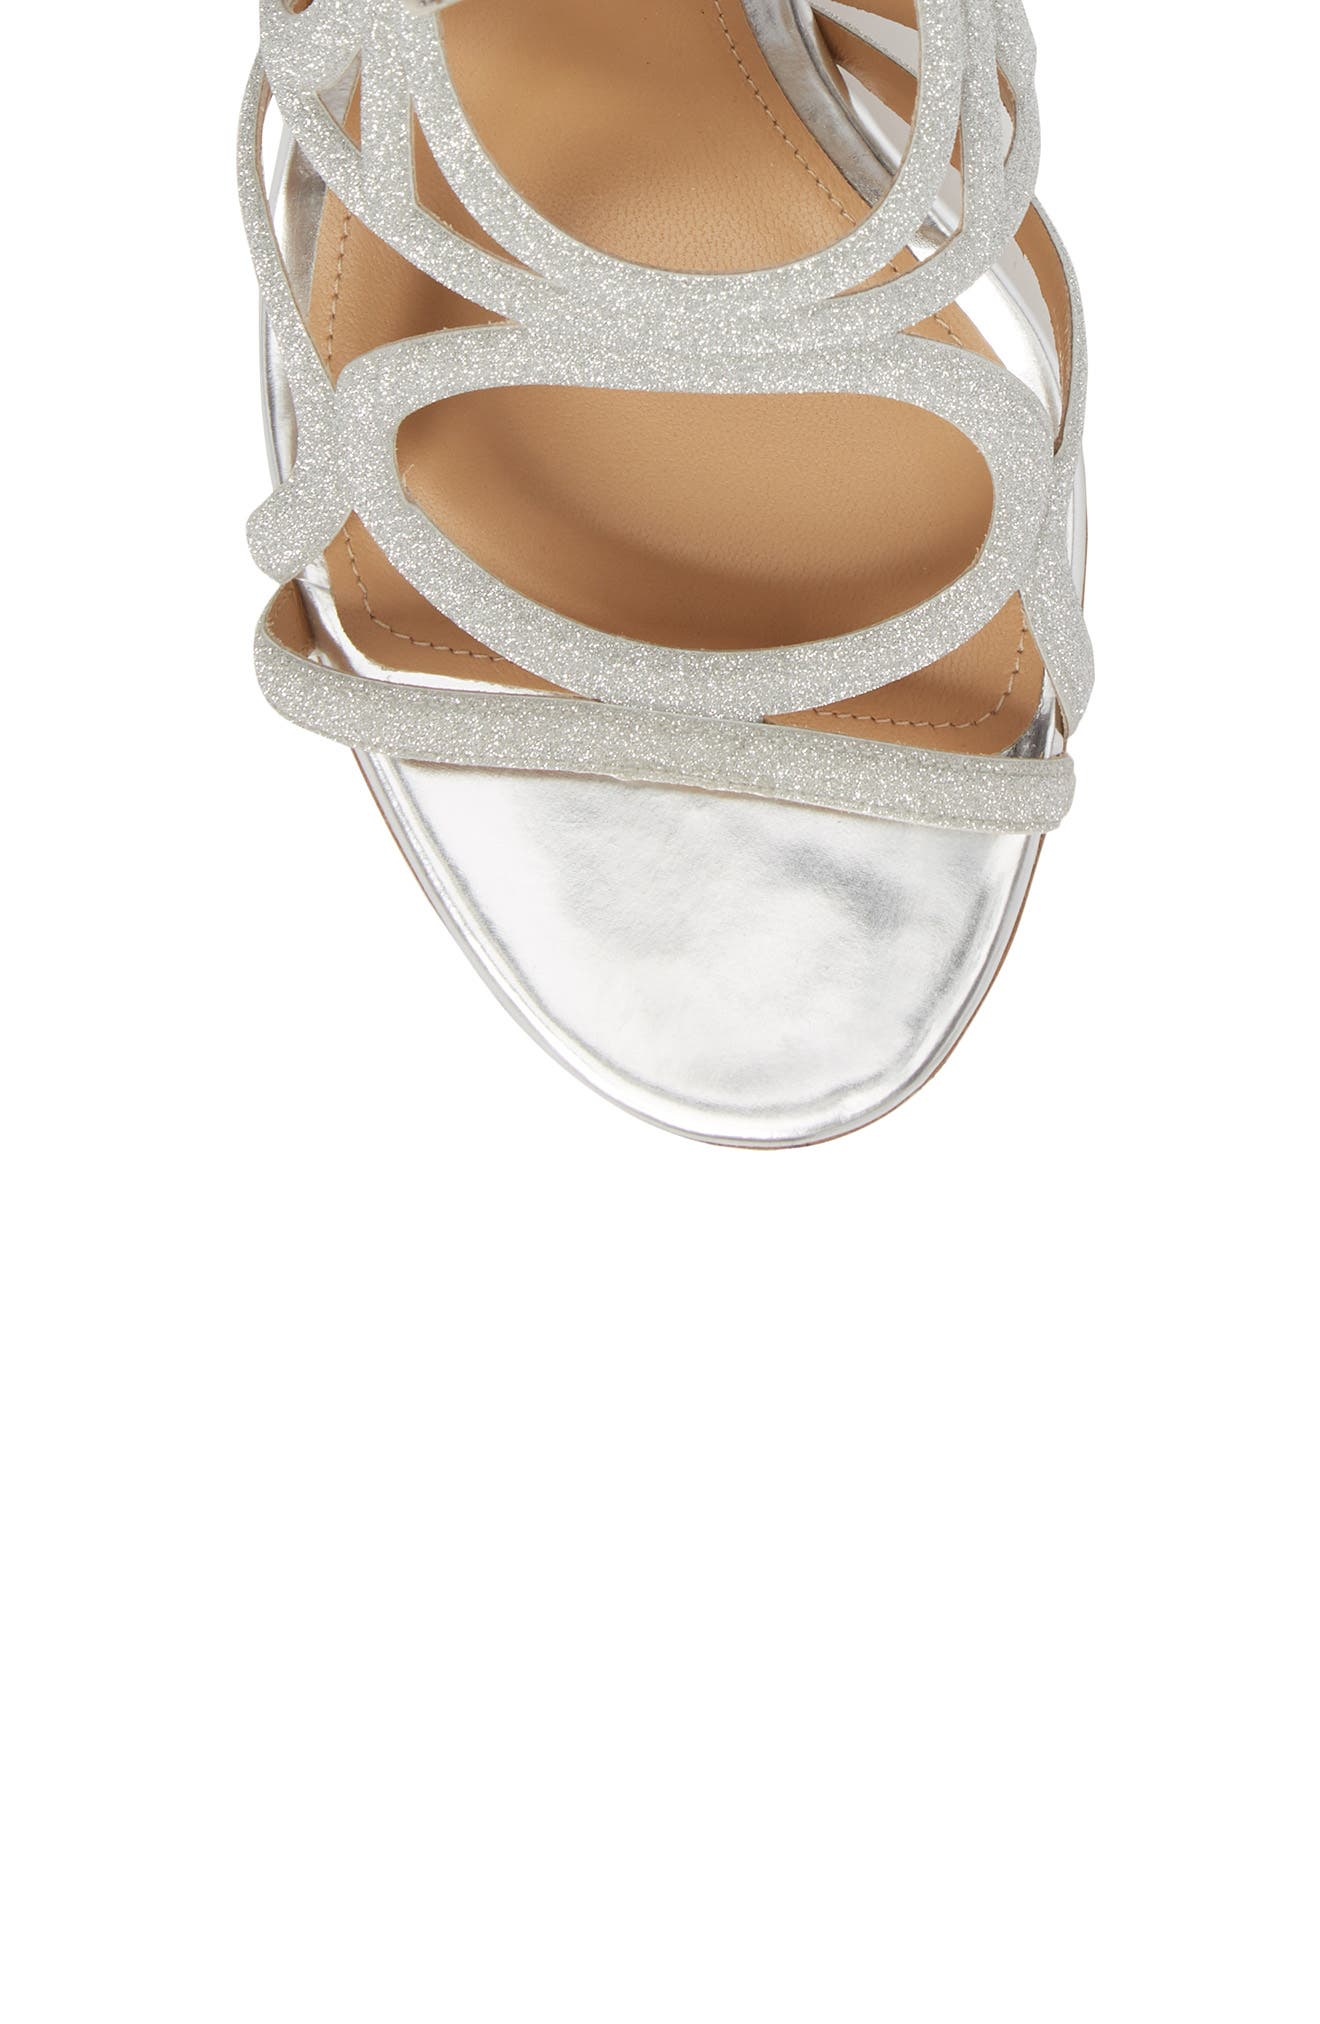 Vinci Lace-Up Block Heel Sandal,                             Alternate thumbnail 5, color,                             SILVER